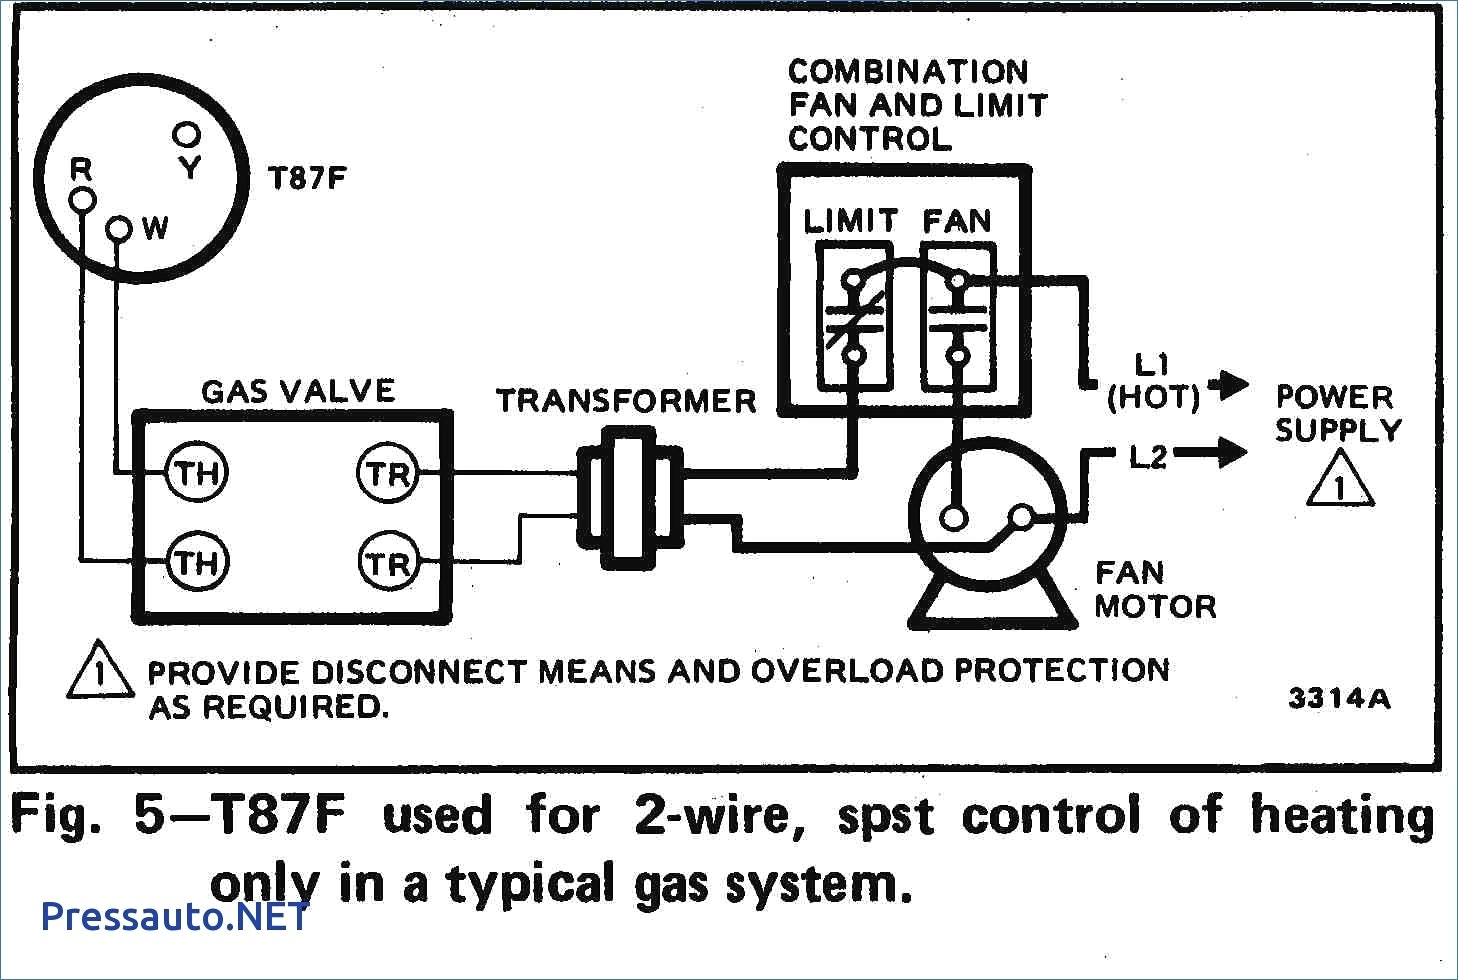 Reznor Waste Oil Furnace Thermostat Wiring Diagram Libraries